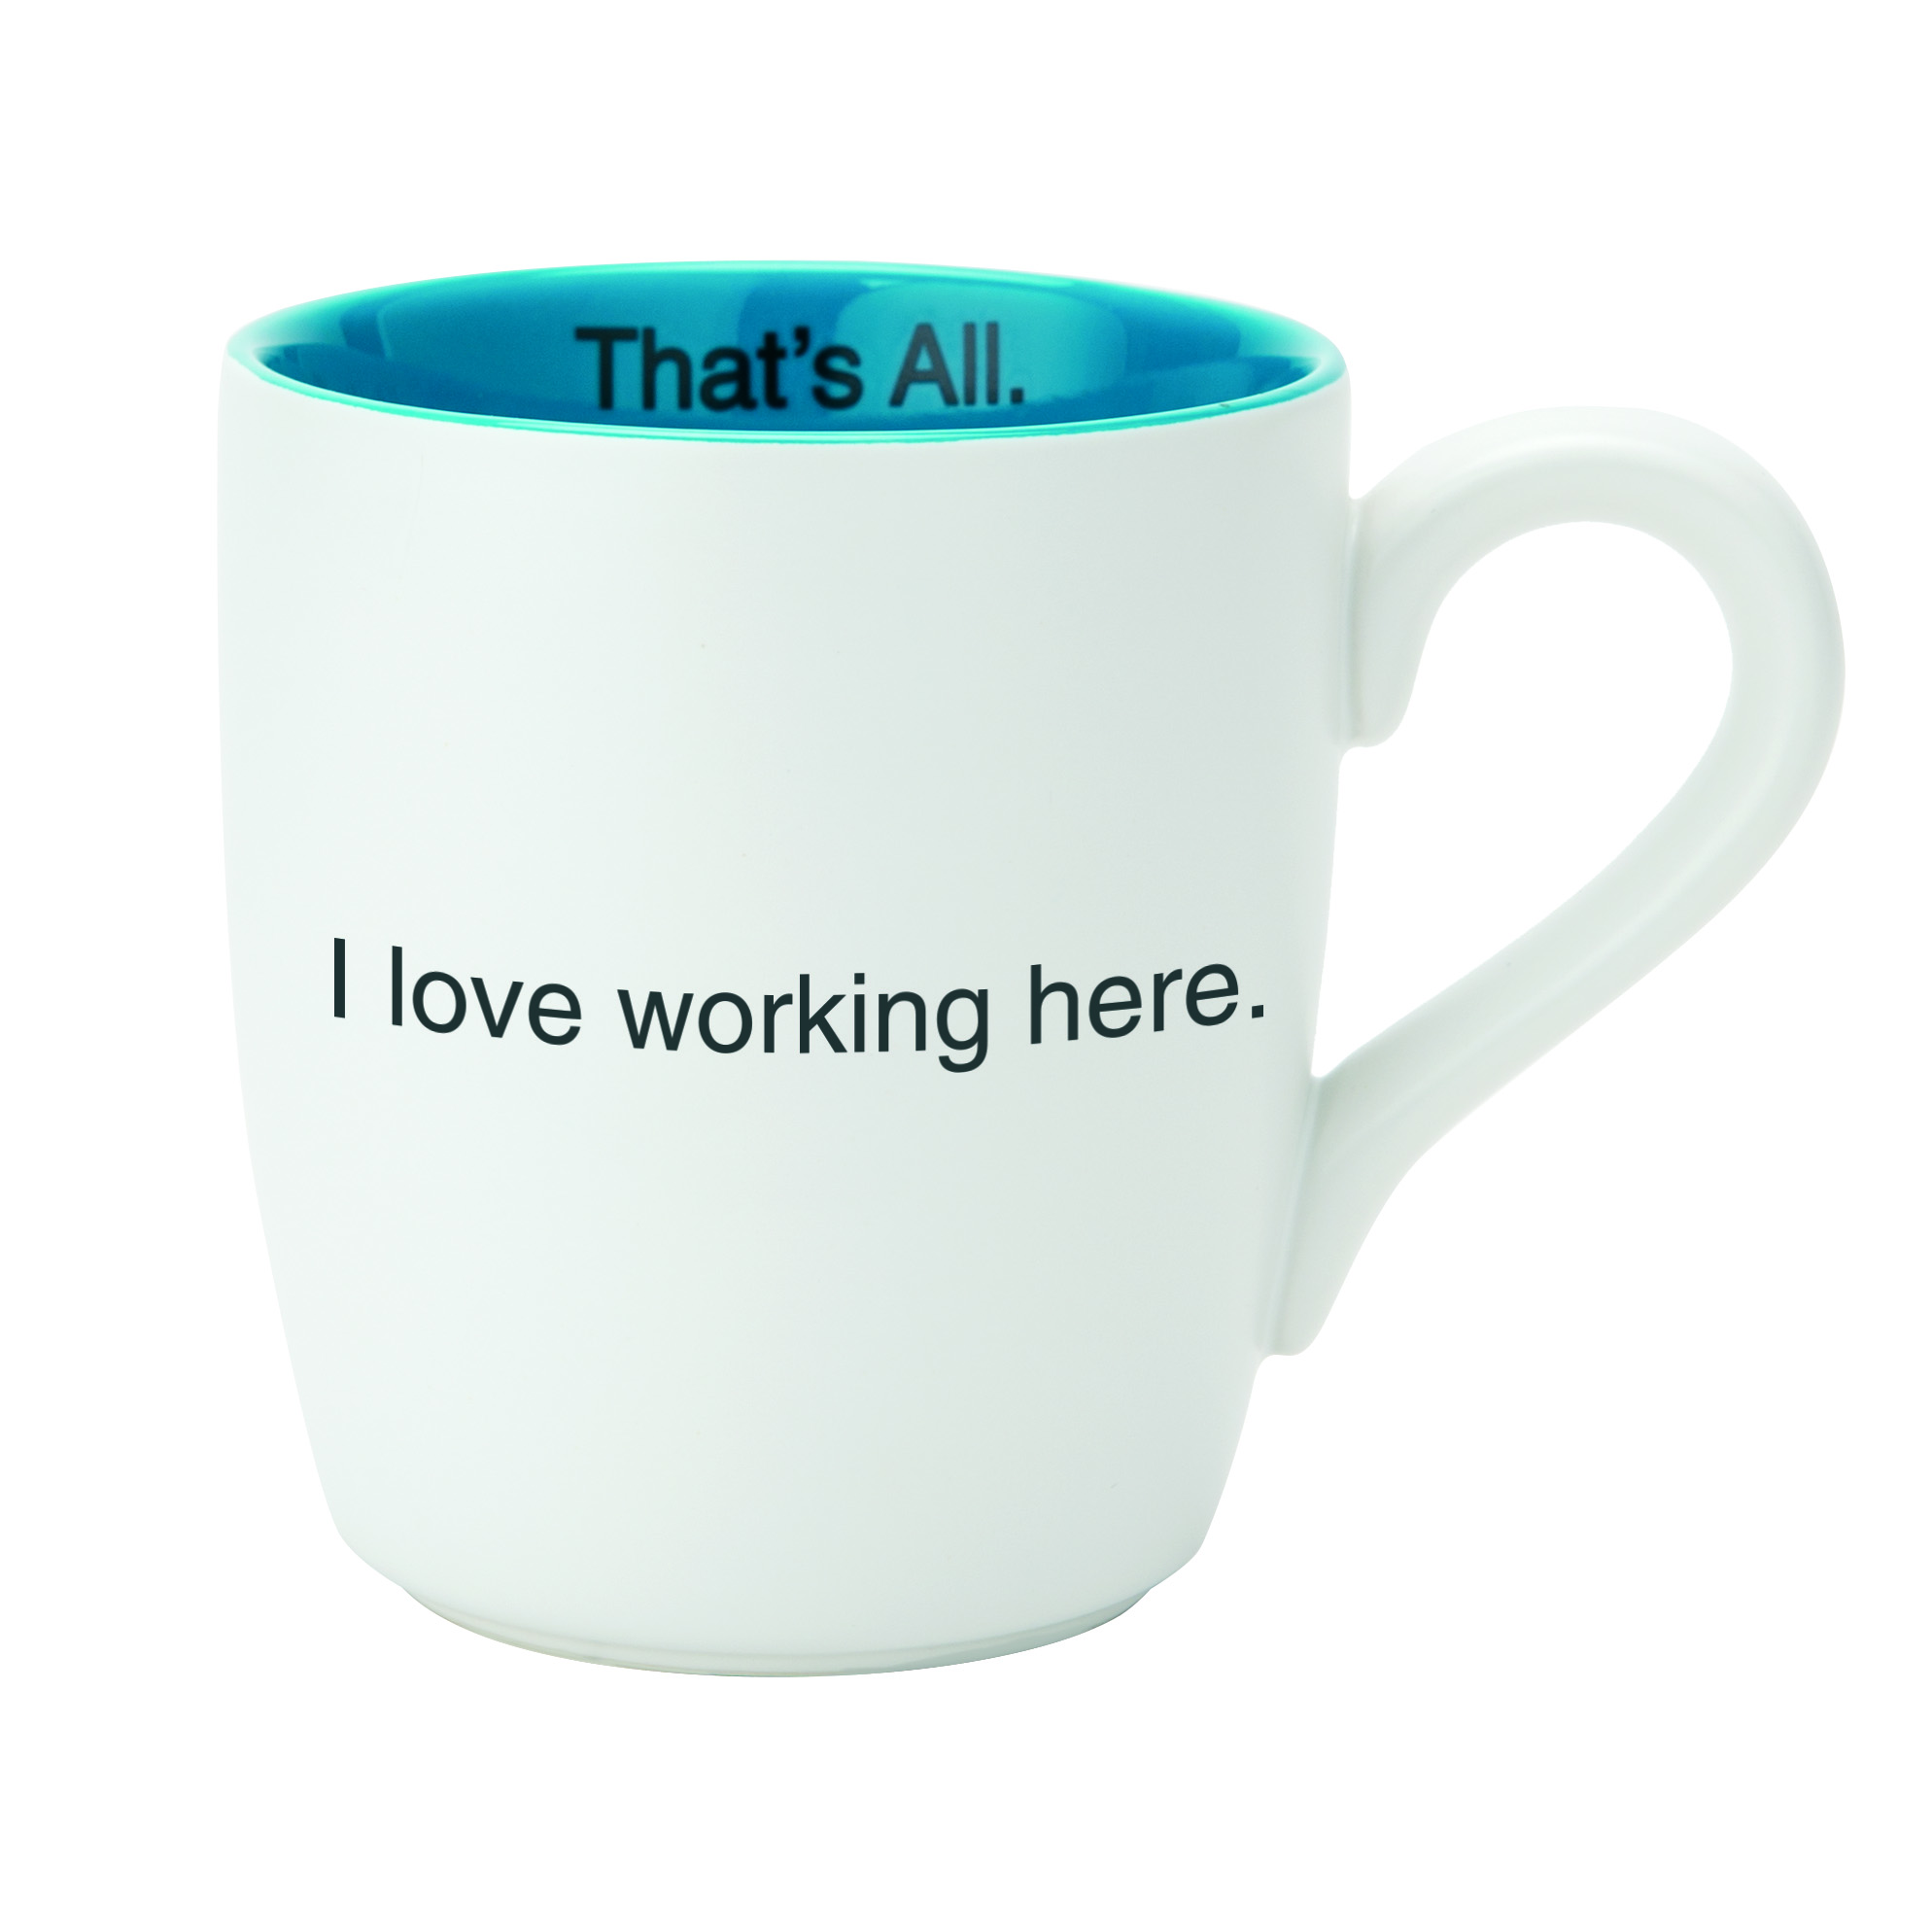 That's All® Mug - I Love Working Here